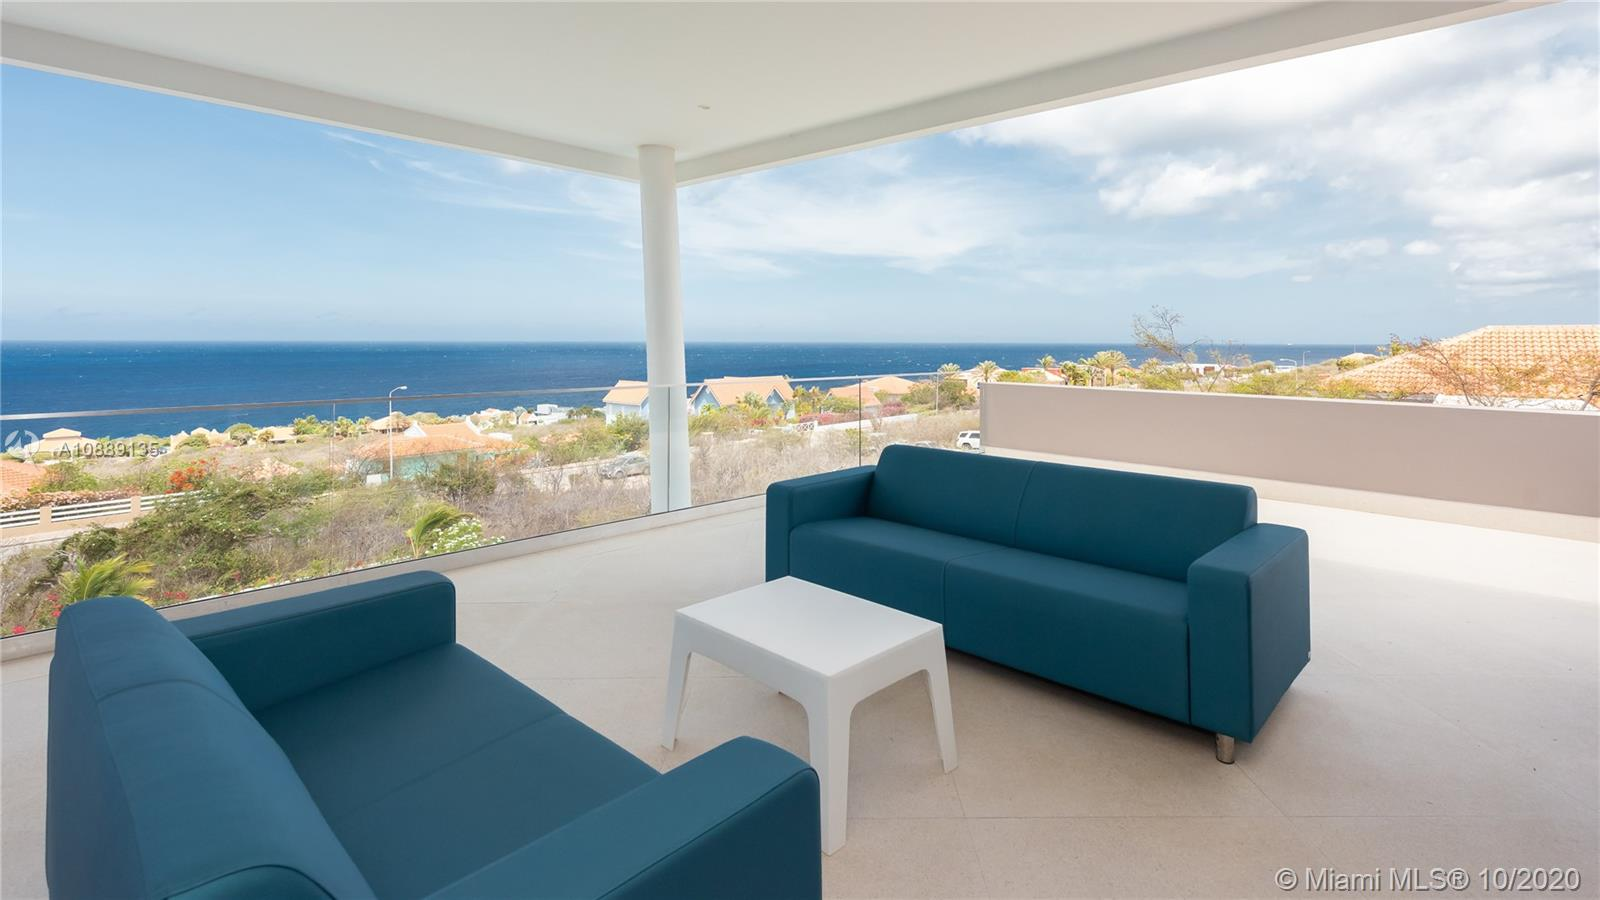 All Master bedrooms have private terraces overlooking the ocean and a guest bathroom.